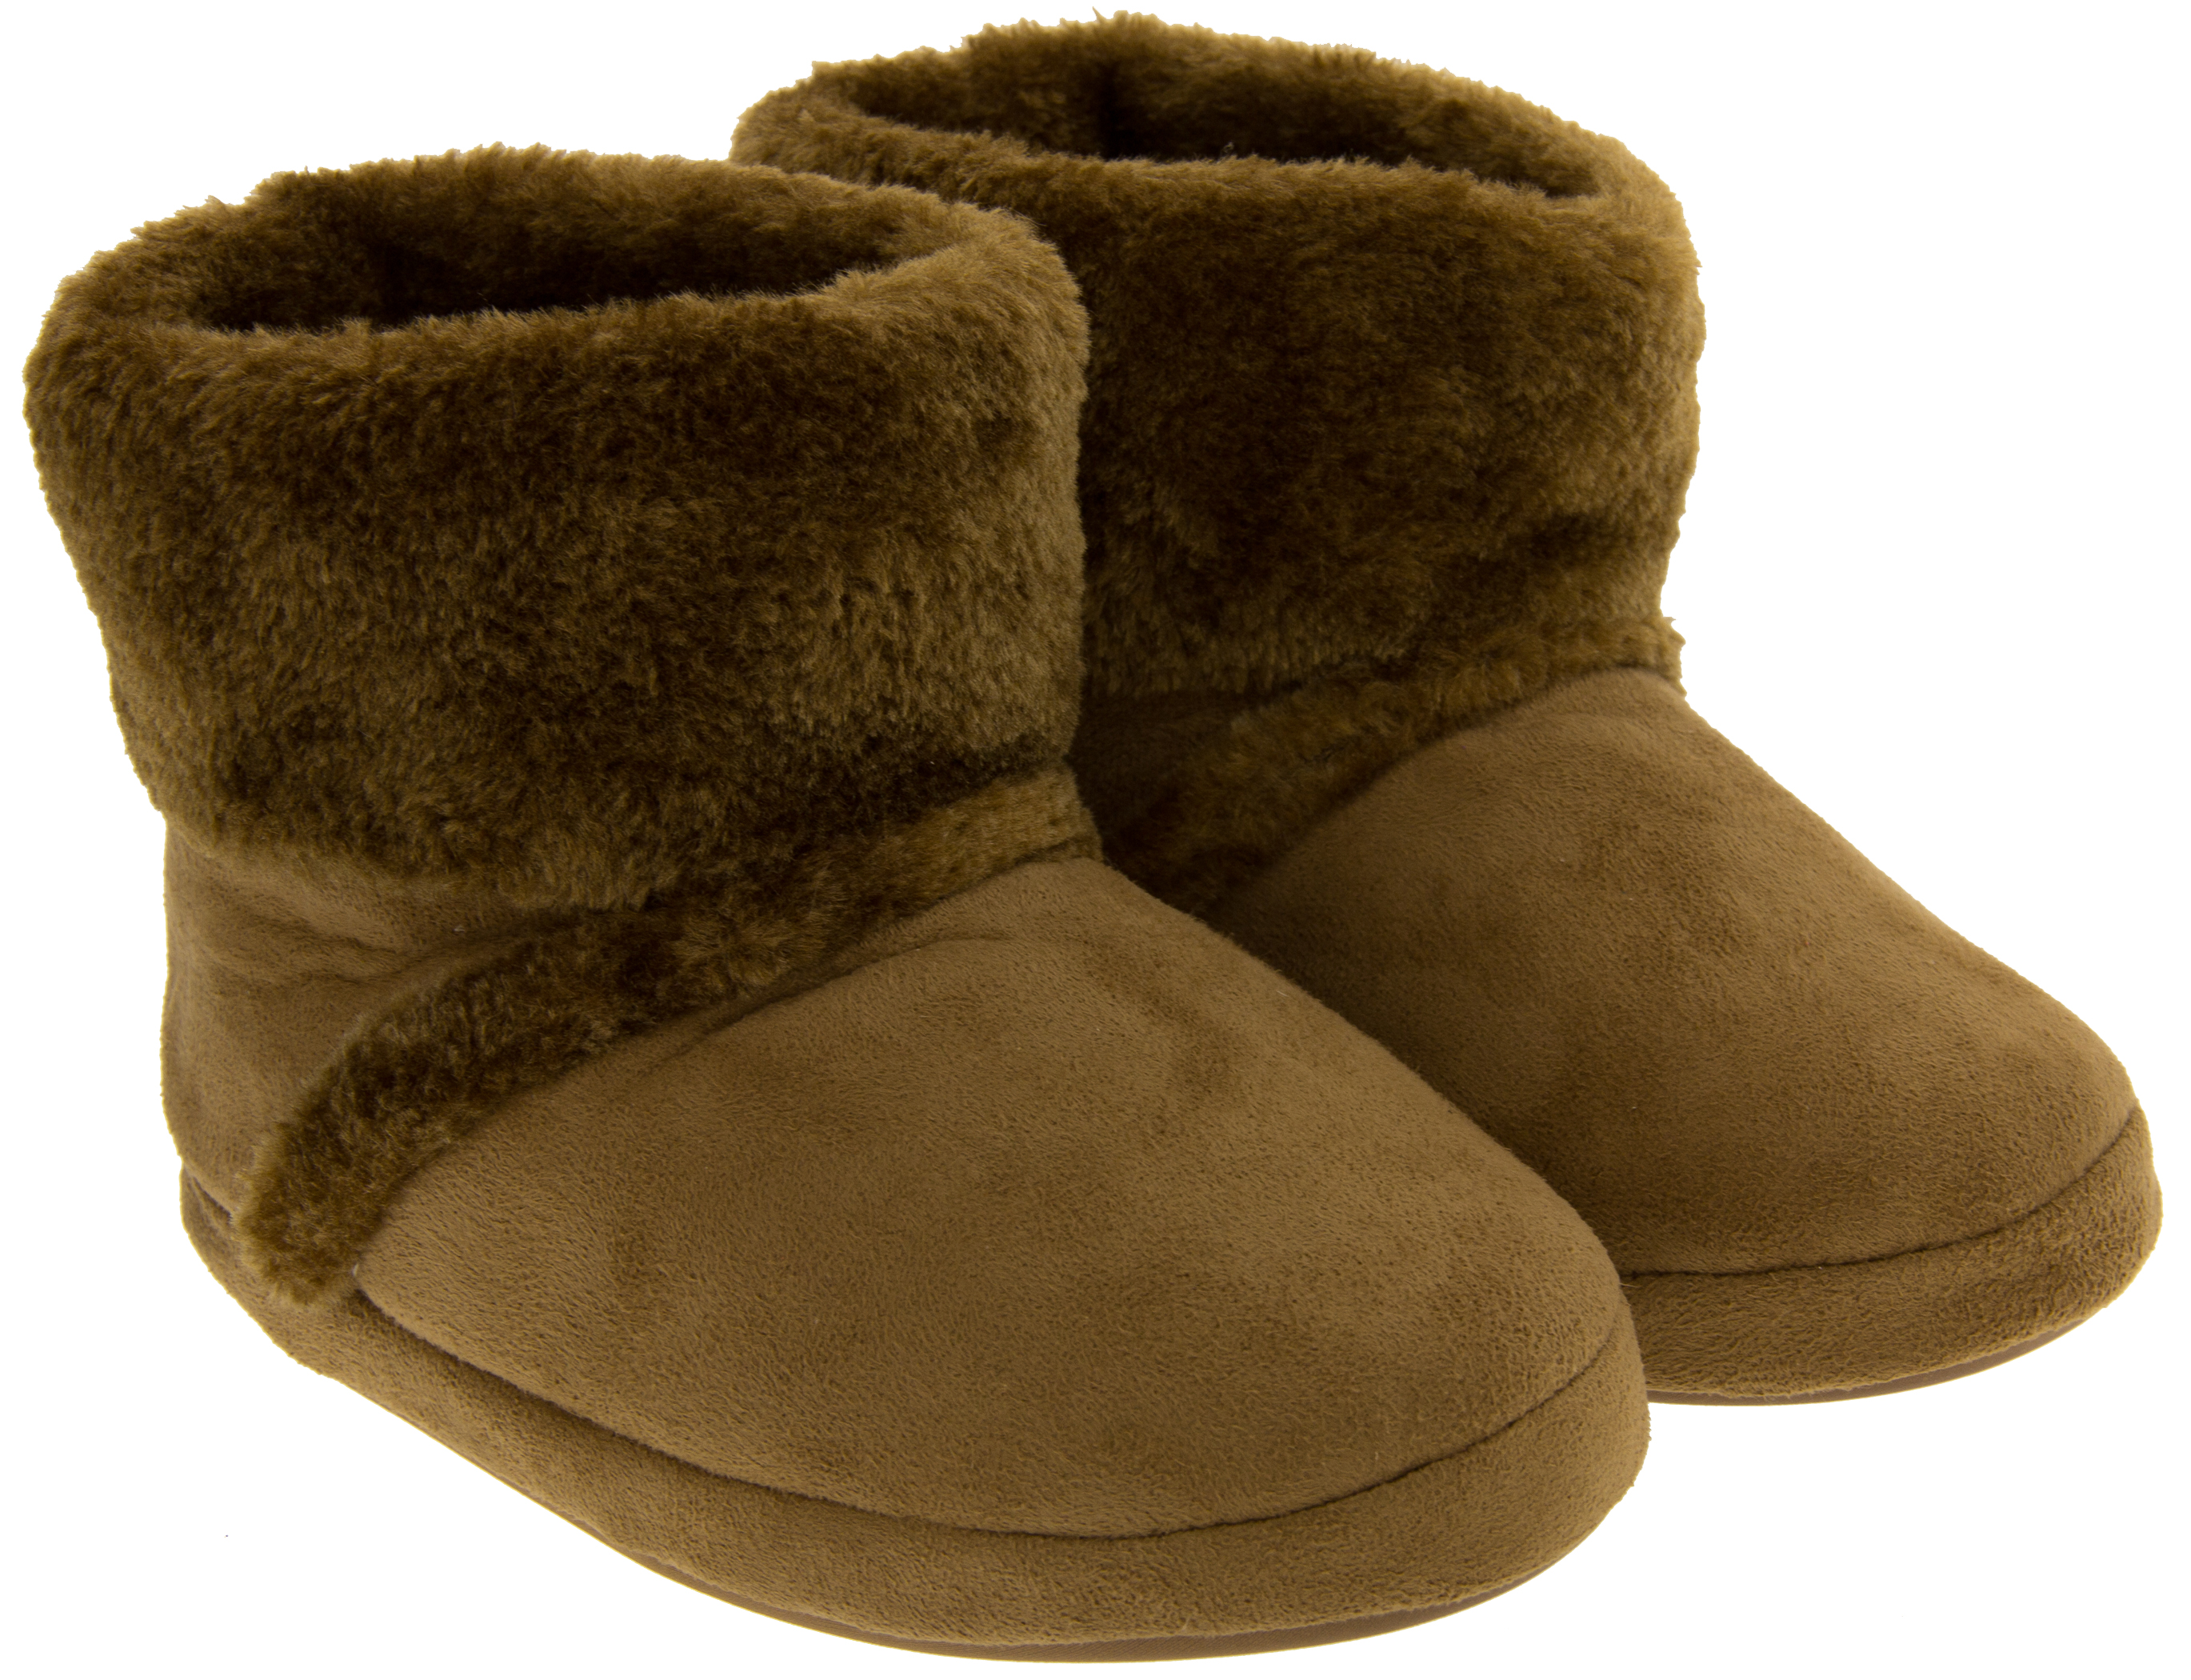 Girls Warm Soft Faux Fur Comfy Winter Slipper Boots Booties Slippers Size 8 - 2